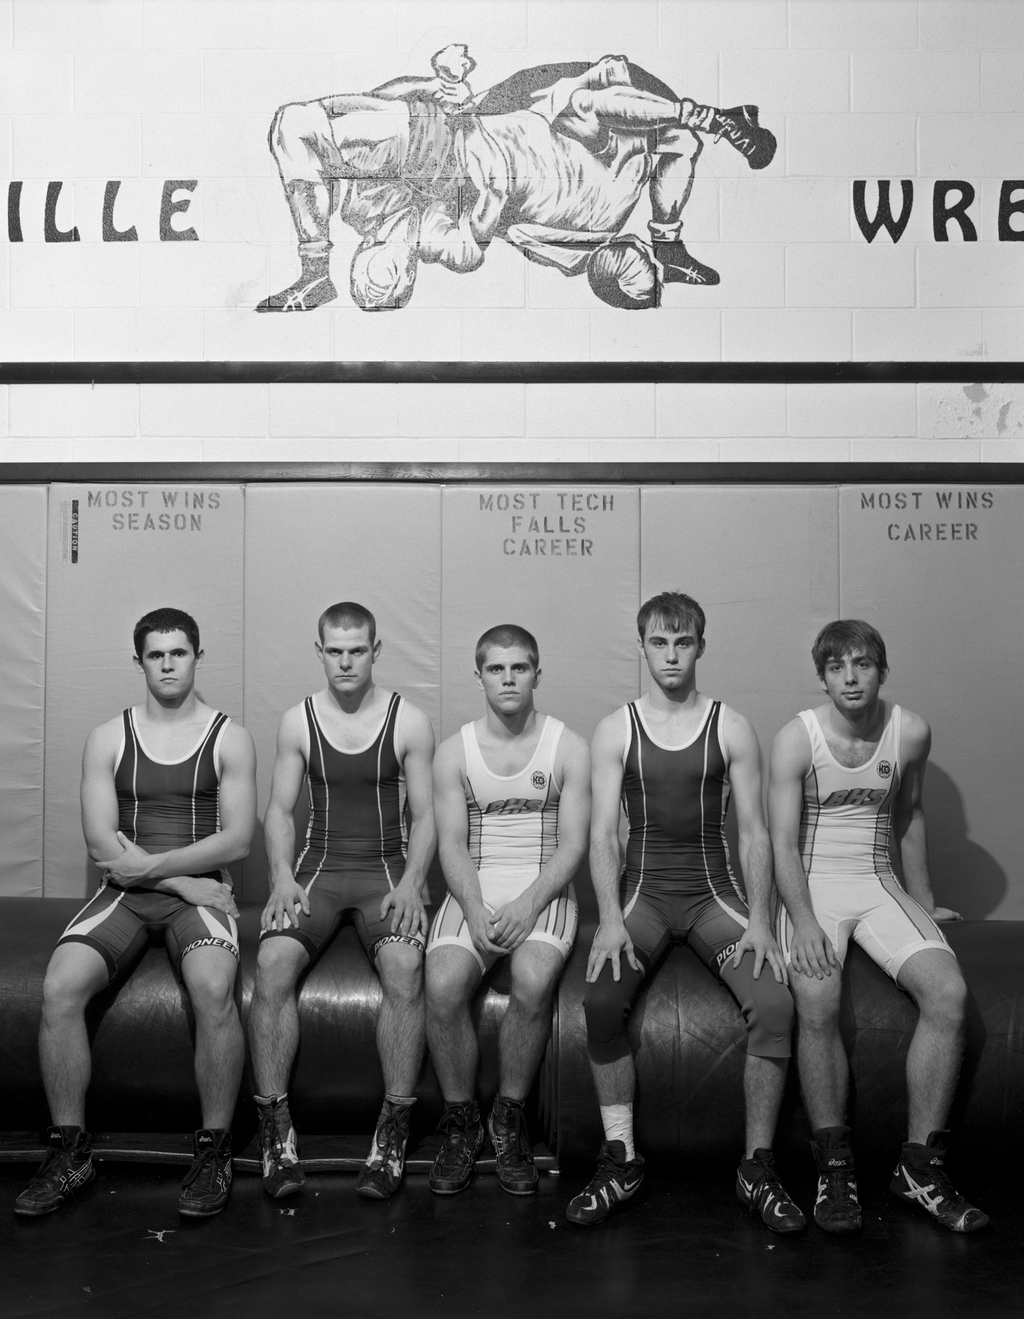 Five Members Of The Boonville Pioneers Wrestling Squad. Boonville,IN. 2008 © Timothy Briner